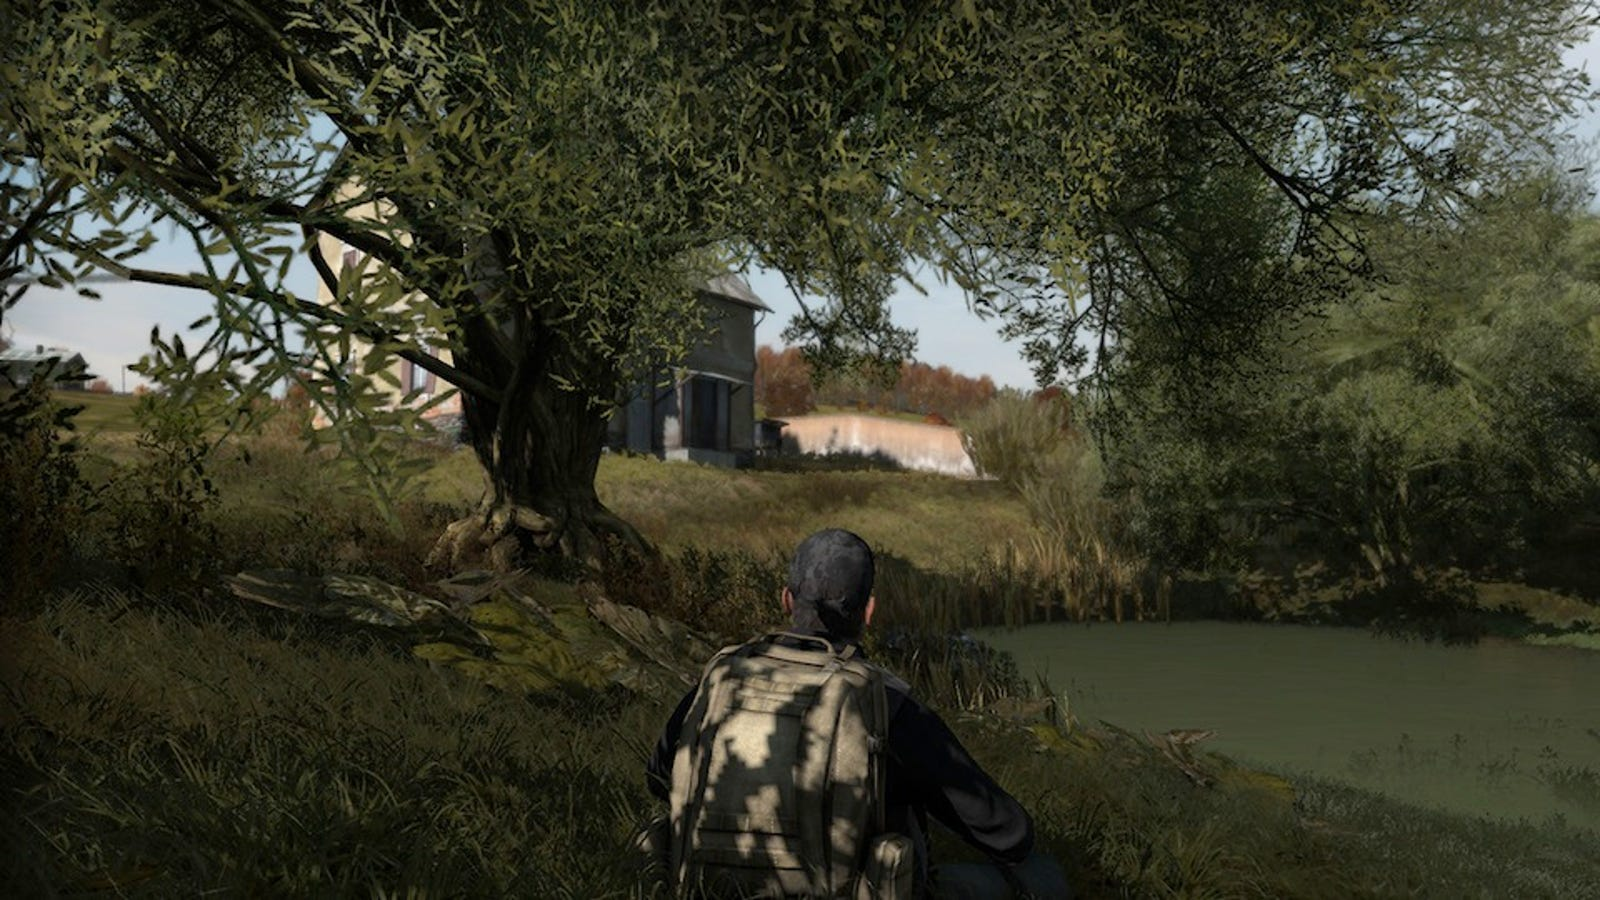 ARMA2 CO Mod: DayZ (Zombies, persistent world) - Games